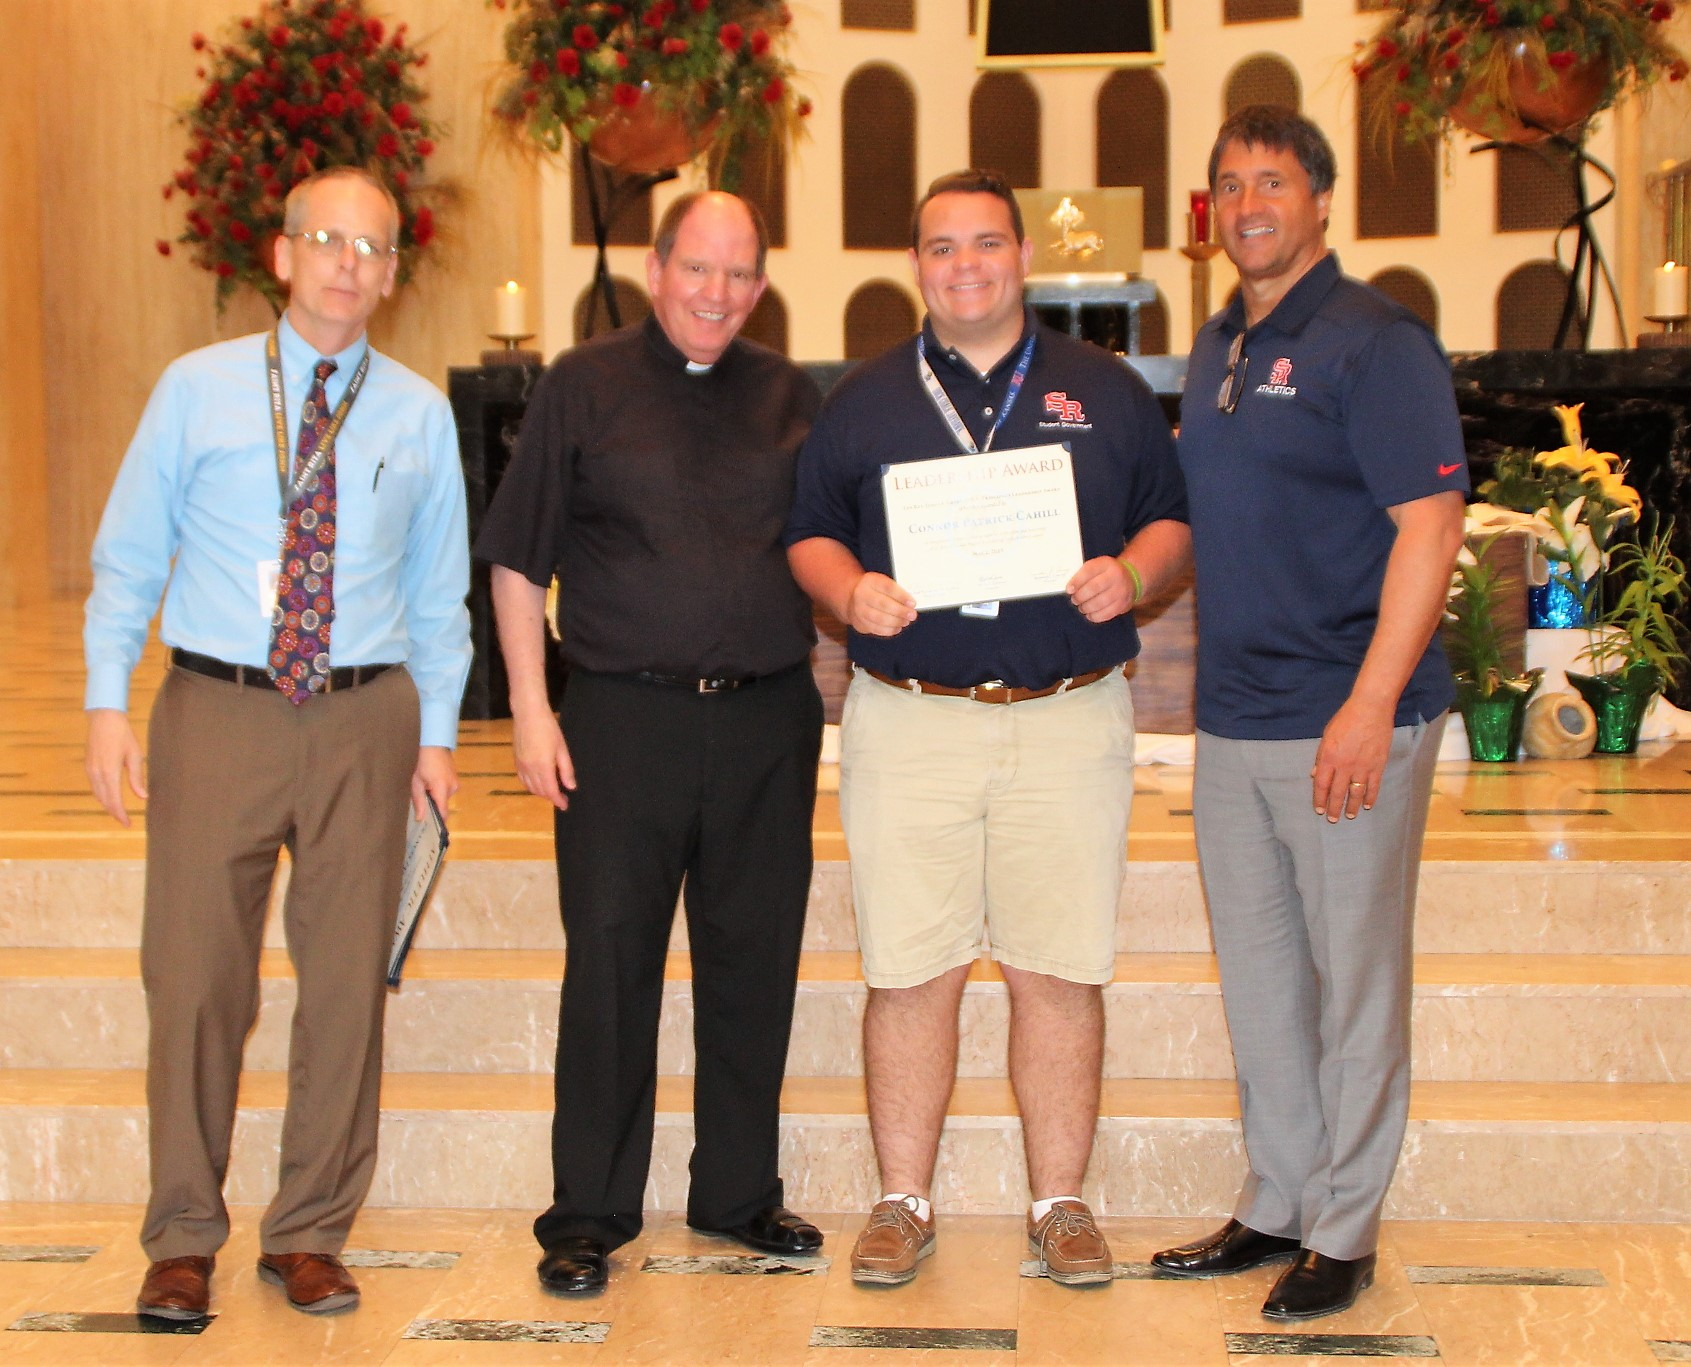 The Rev. James F. Green, O.S.A. Principal's Leadership Award is given in recognition of superior dedication and leadership at St. Rita of Cascia High School during one's high school career. The recipient is Connor Cahill.